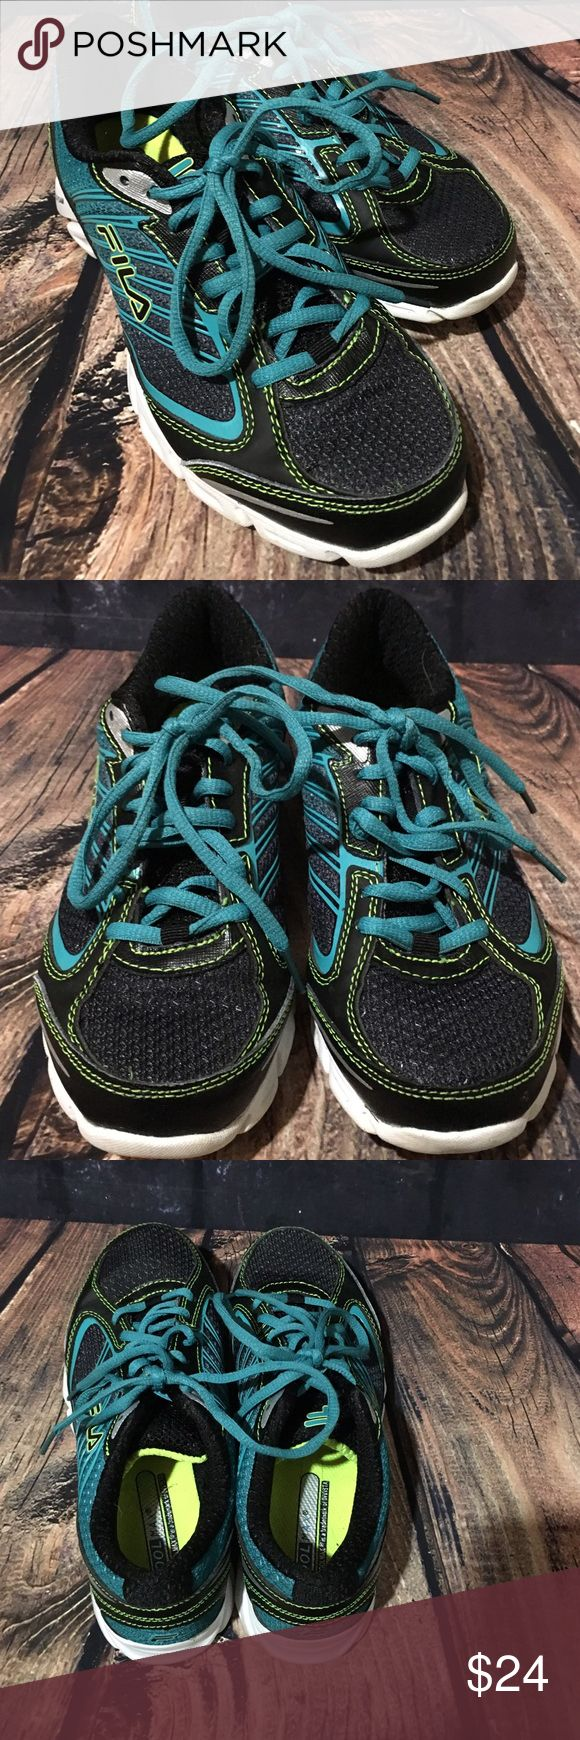 Fila DLS Foam Running Shoes Women's 6.5 Fila athletic running shoes women's size 6.5 DLS Foam, black and teal gently used, minimal wear. Measurements are approximate 10 1/2 inches on outer sole 9 1/4 inches on inside sole Fila Shoes Athletic Shoes